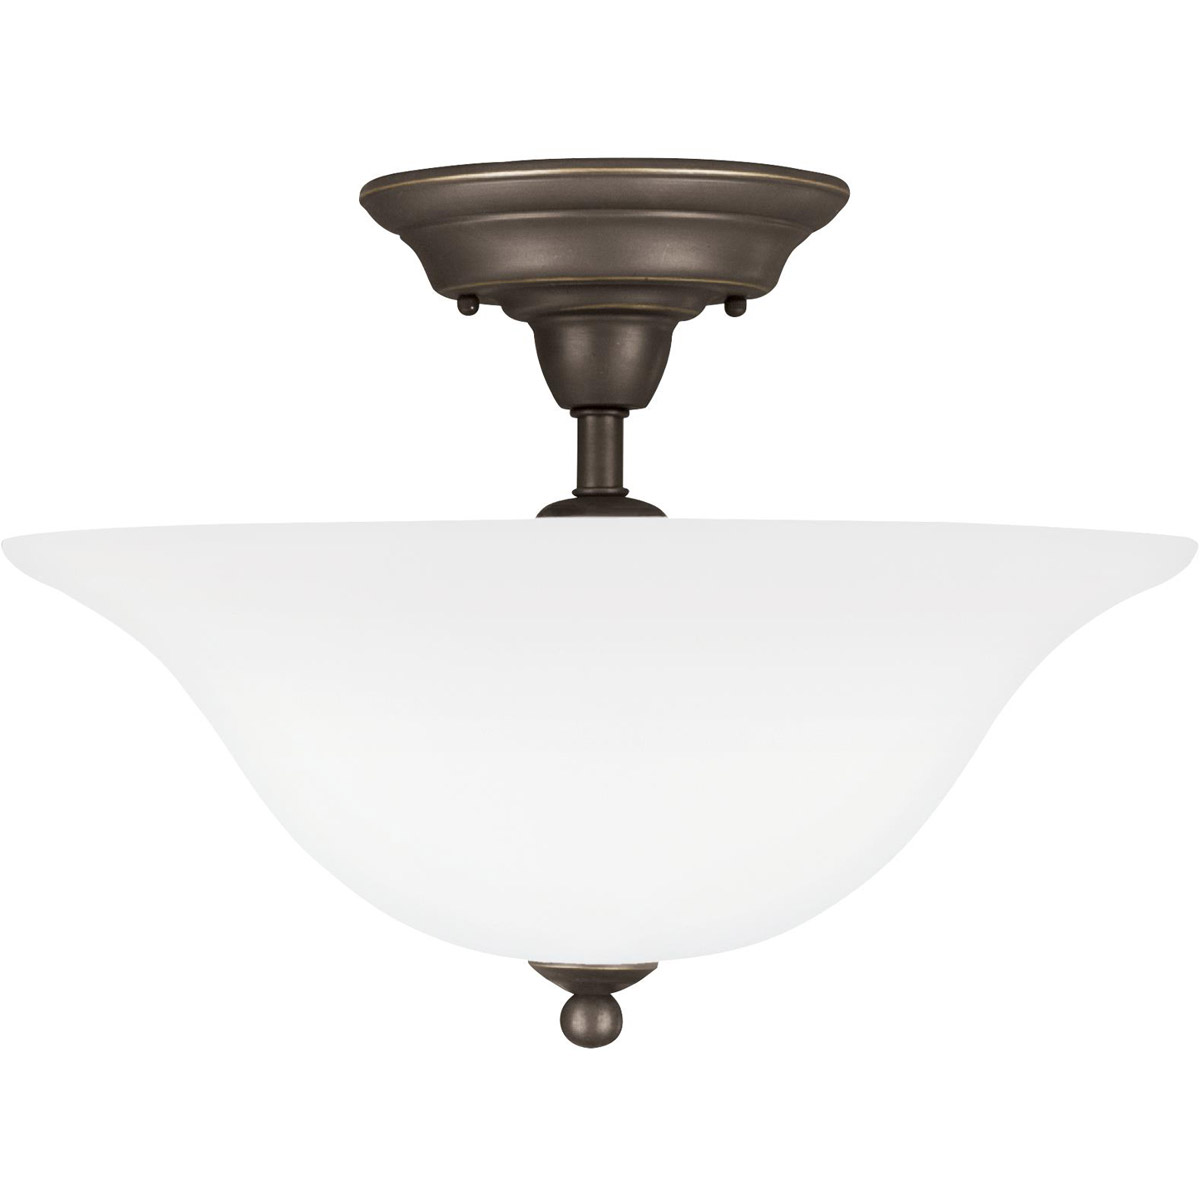 Sea Gull Lighting Sussex 3 Light Semi Flush Mount in Heirloom Bronze 75061-782 photo